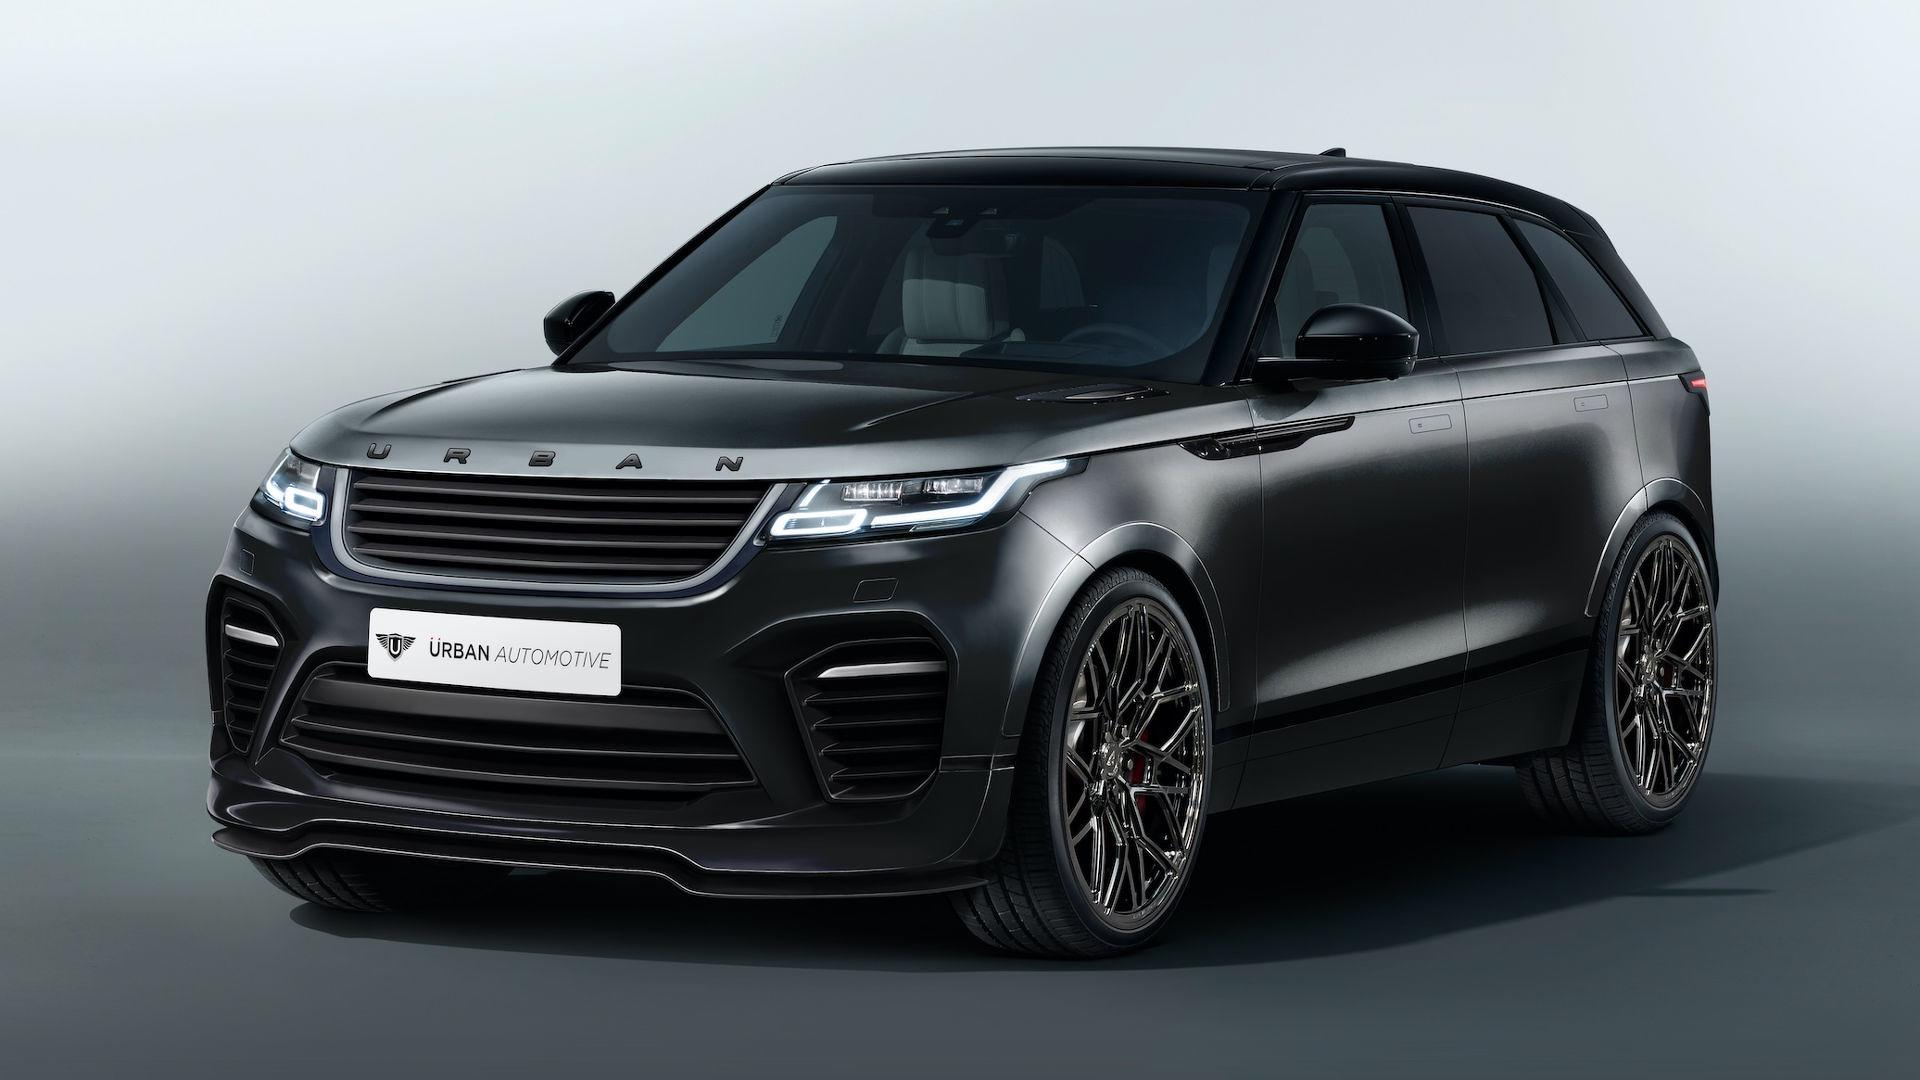 2019 Range Rover Velar SVR: News, Specs, Price >> Range Rover Velar Gets A Subtle Makeover By Urban Automotive